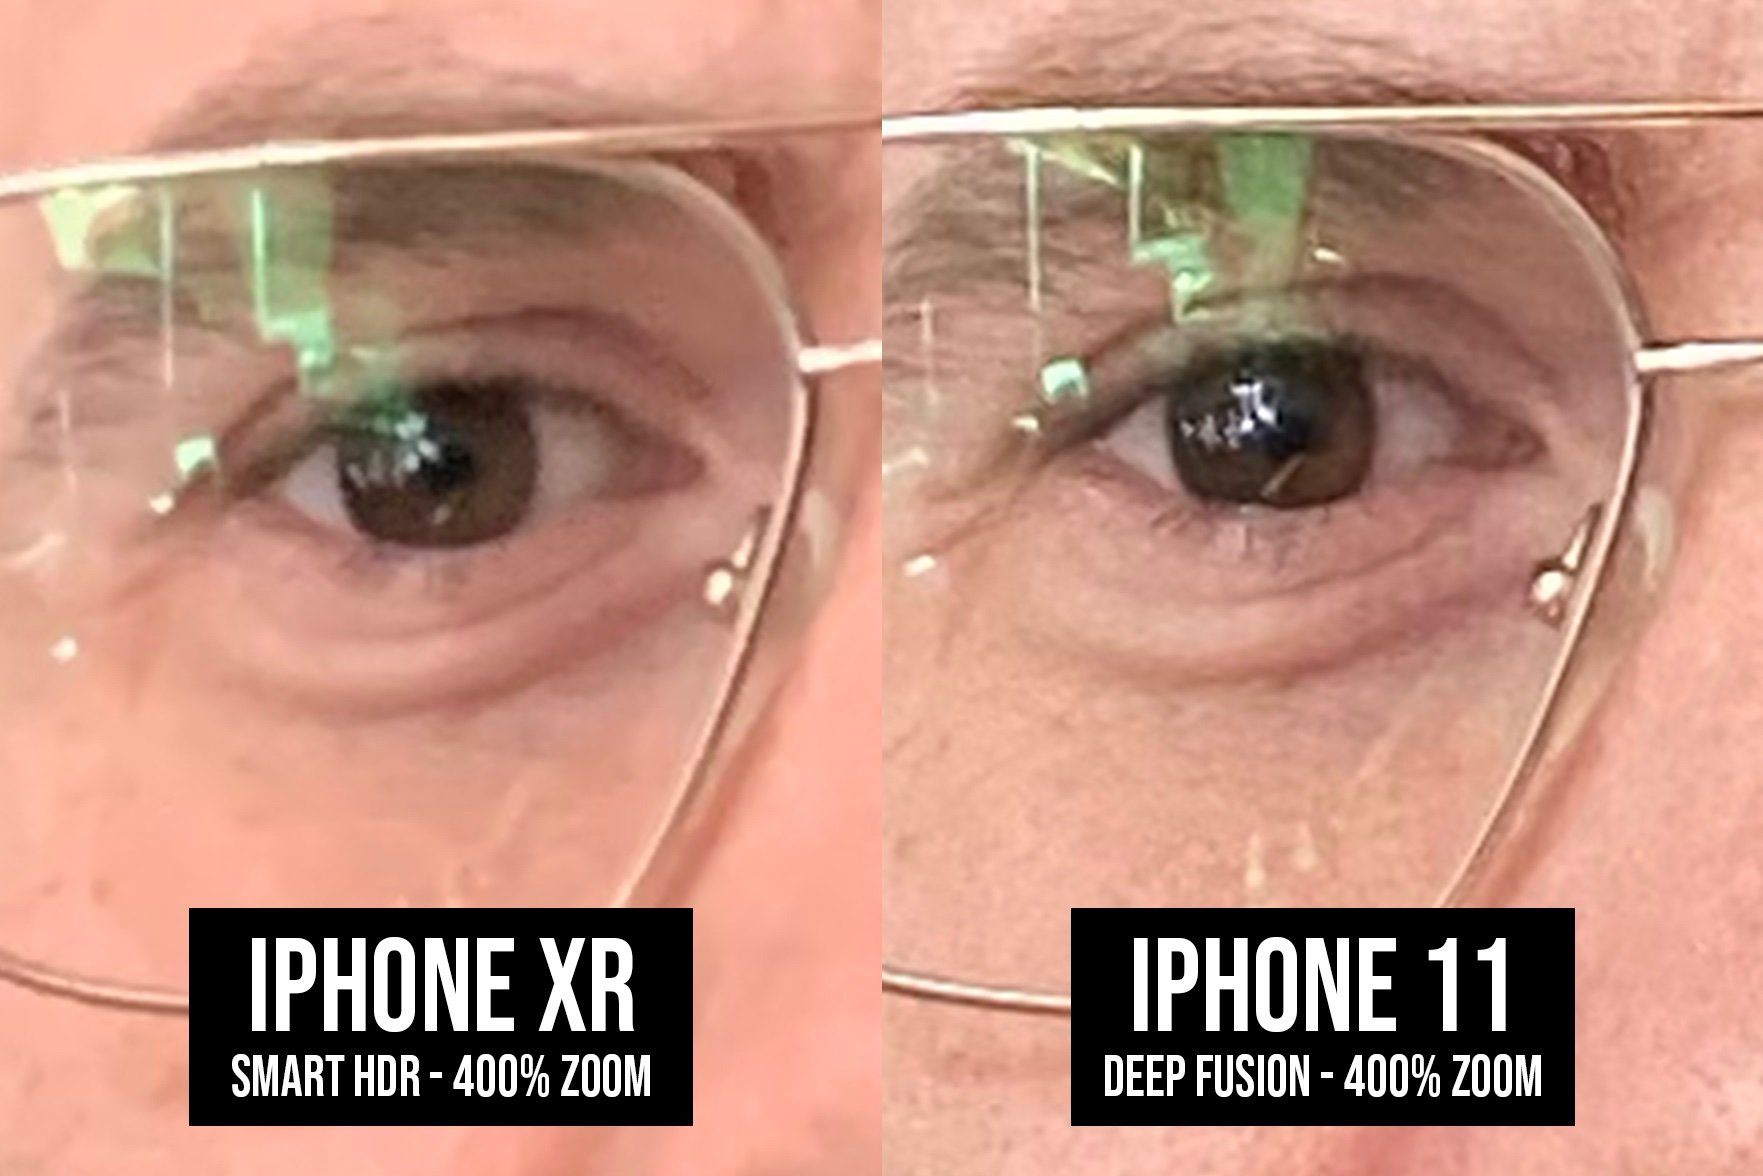 iPhone 11 poza deep fusion comparatie iphone xr